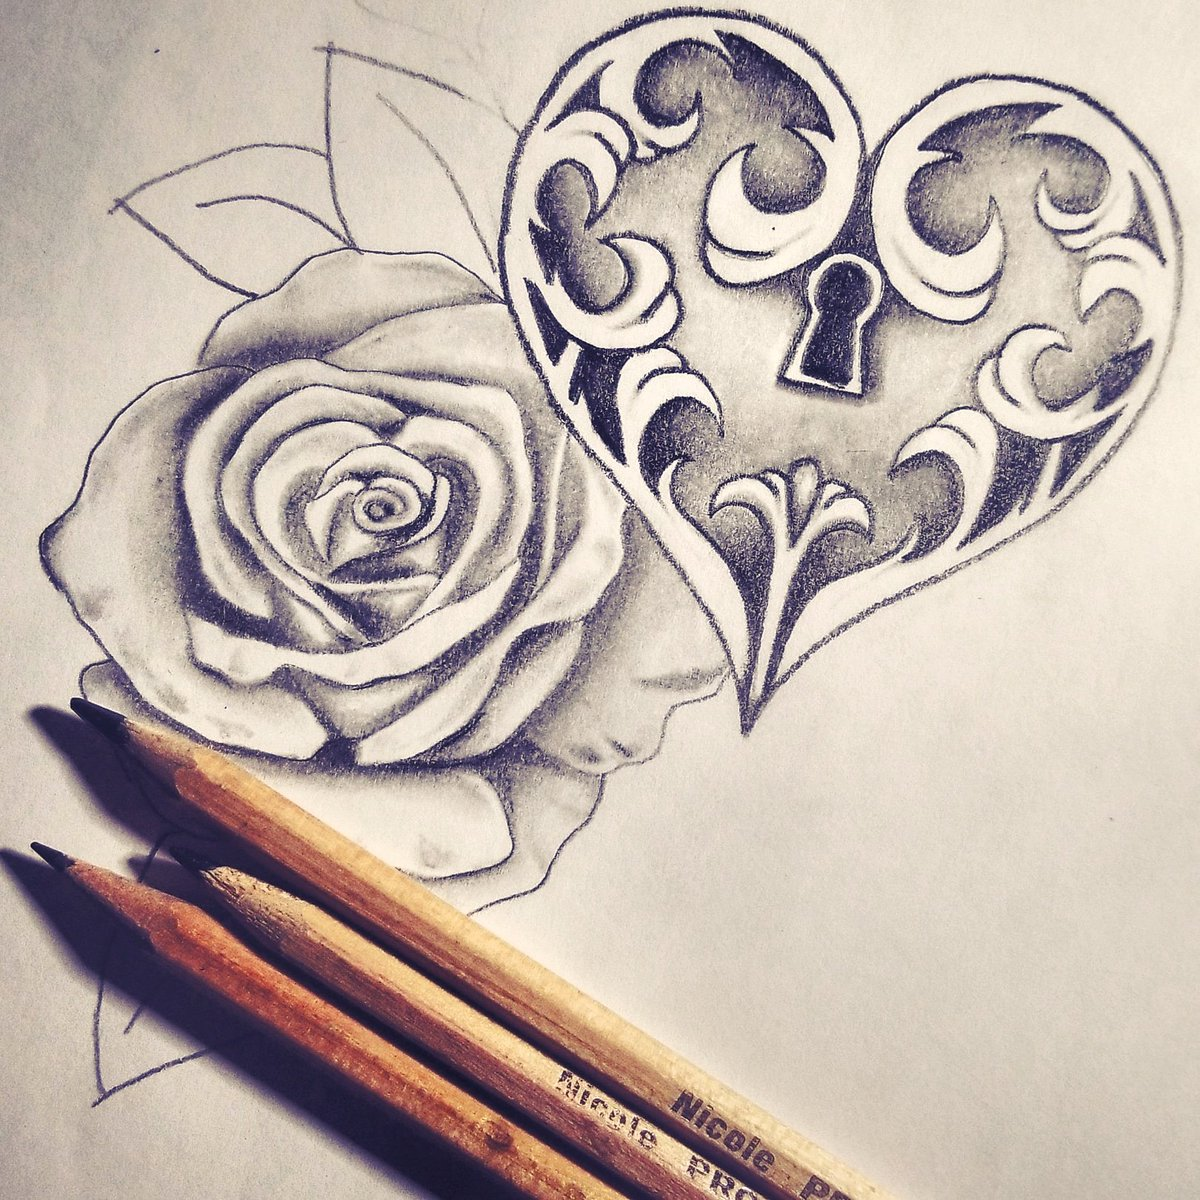 Jacqueline On Twitter Drawing Done By Me Drawing Sketch Tattoosketch Tattoo Heart Rose Art Artwork Artist Rosetattoo Draw Illustration Pencil Pencilwork Pencilart Follow Artsy Artoftheday Lcoket Love Https T Co 1adsnx3pwp